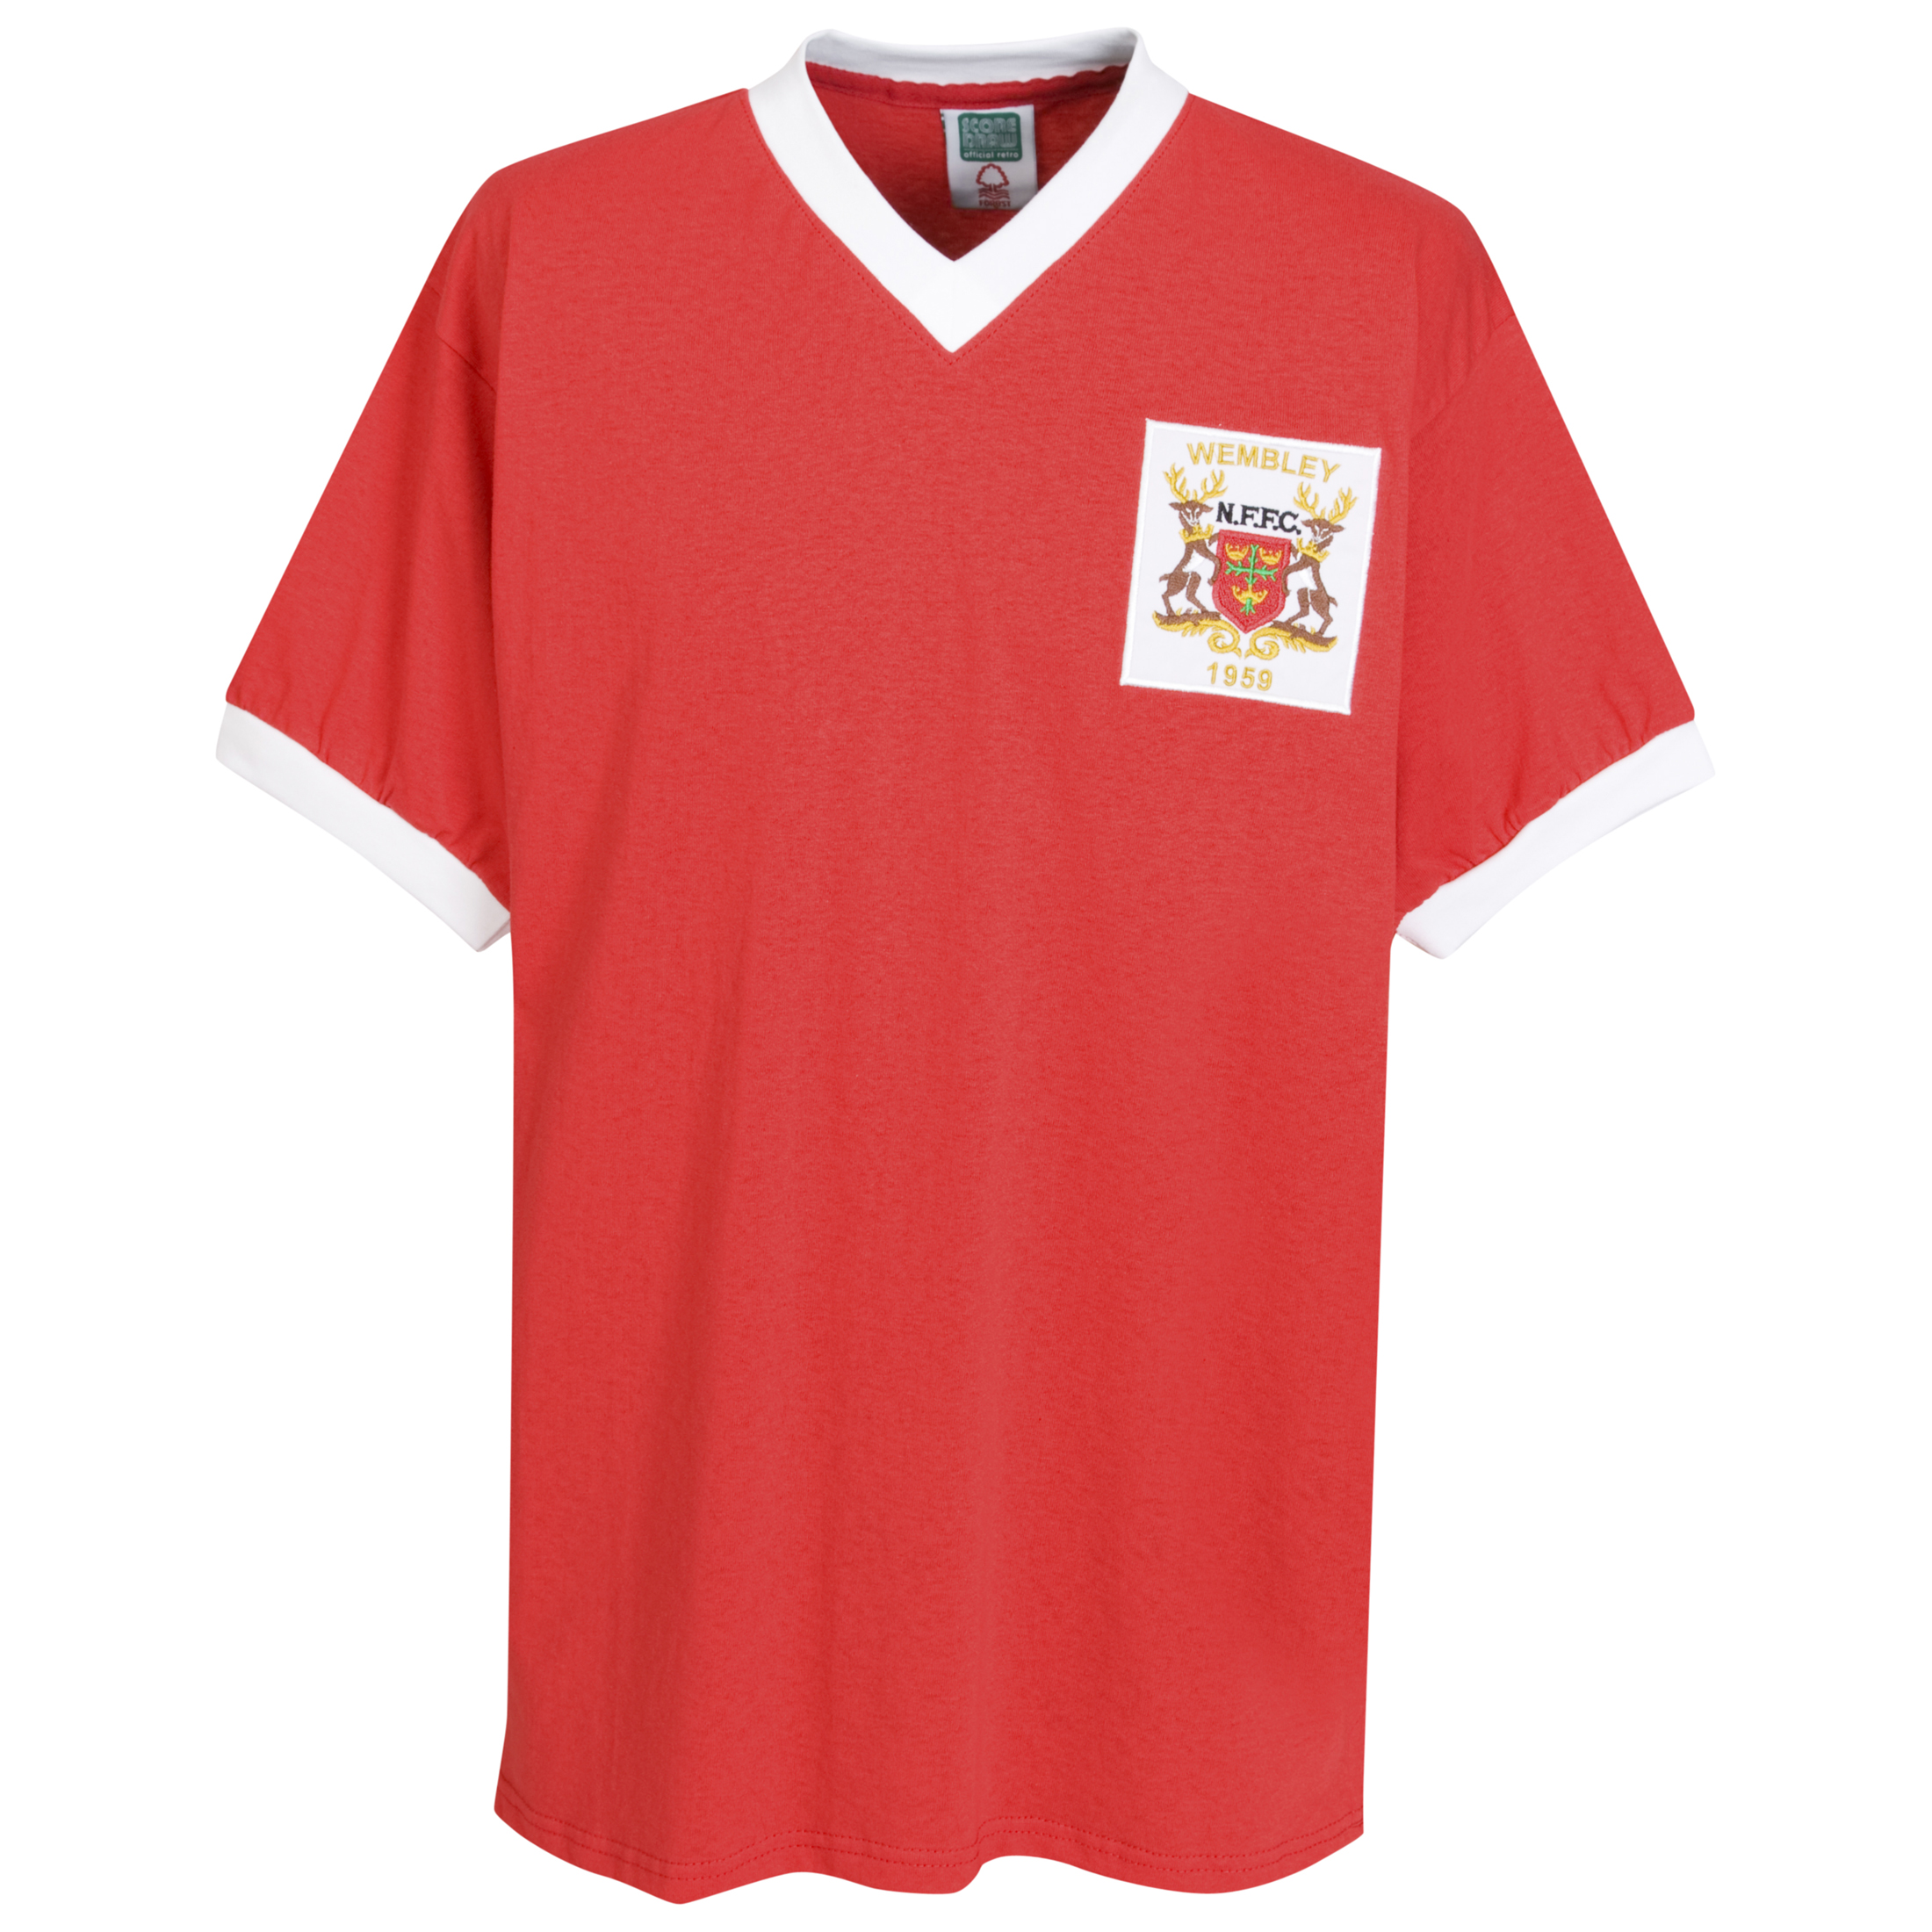 Nottingham Forest 1959 FA Cup Final shirt - Red